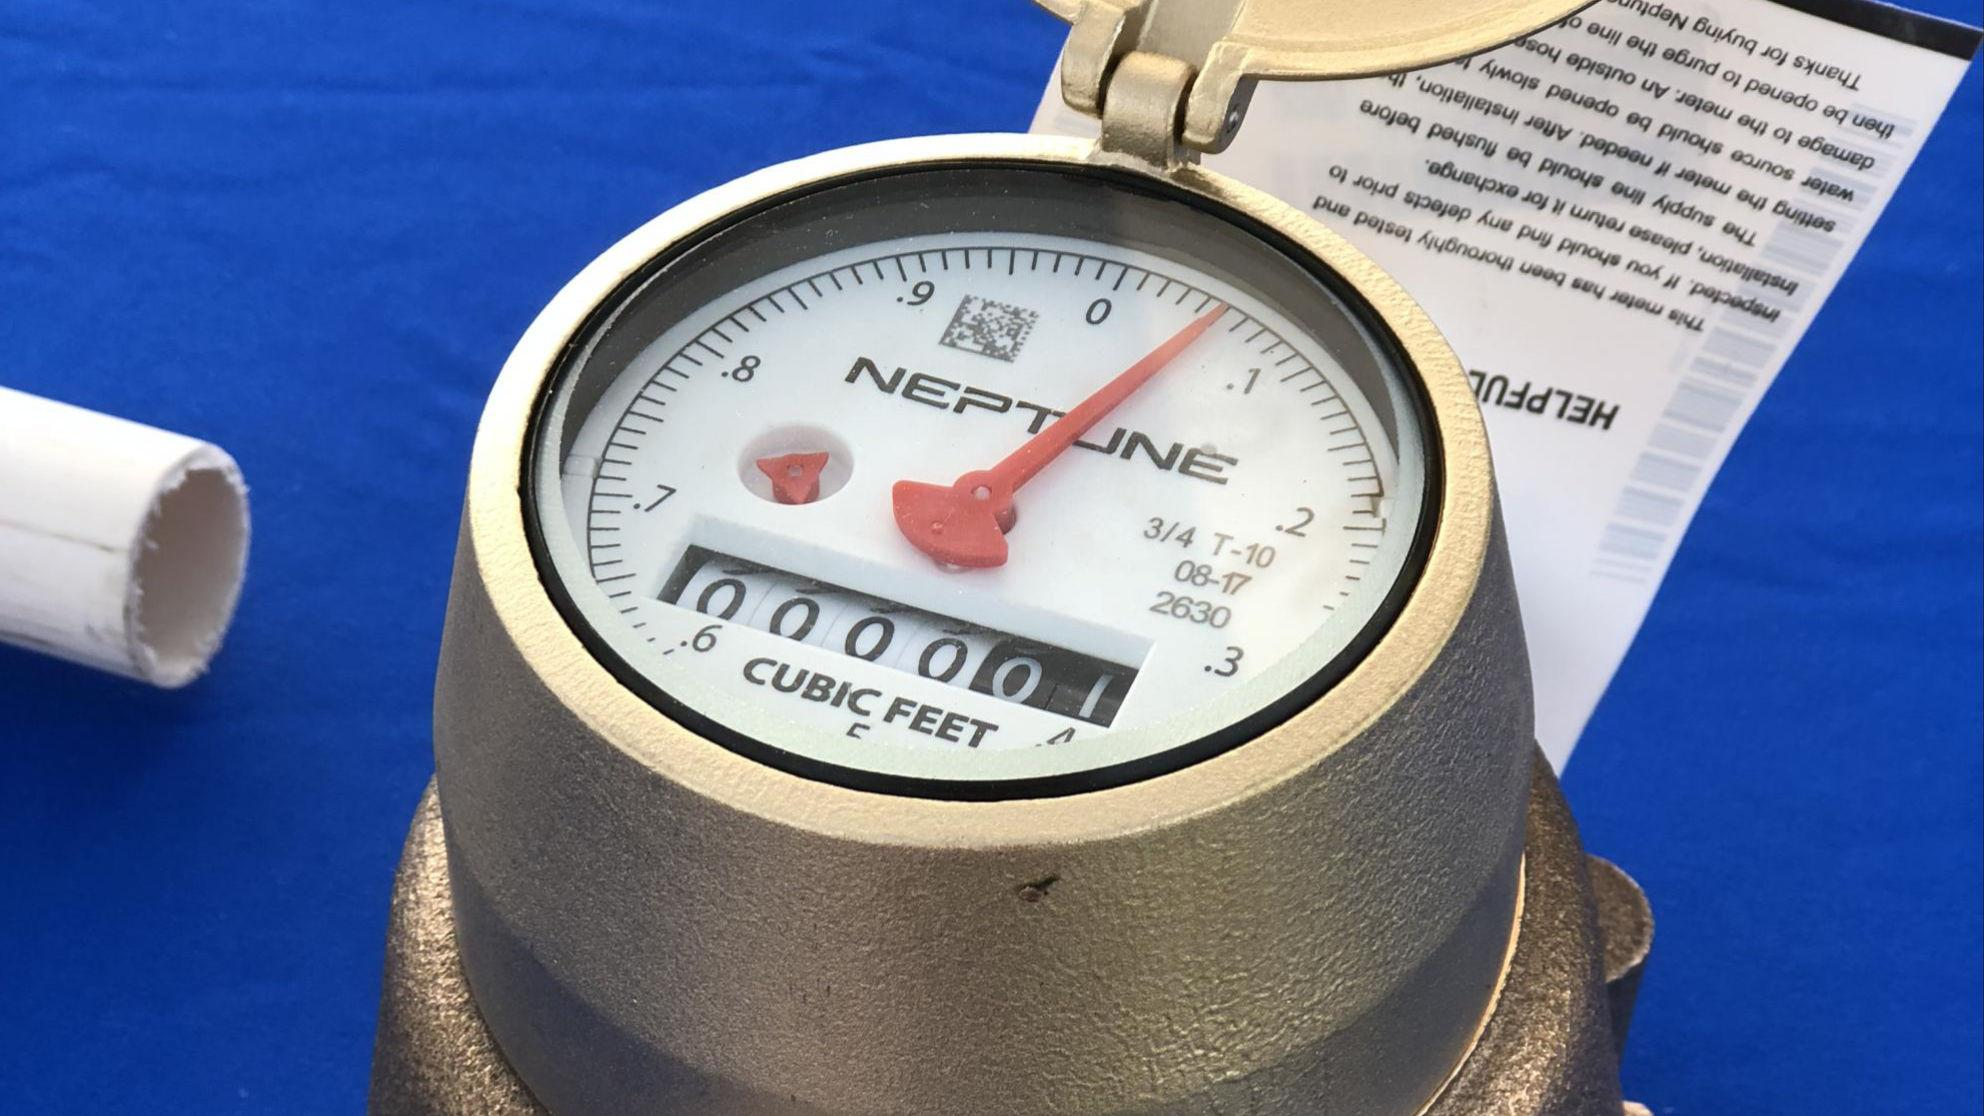 Closeup of a new water meter on a table